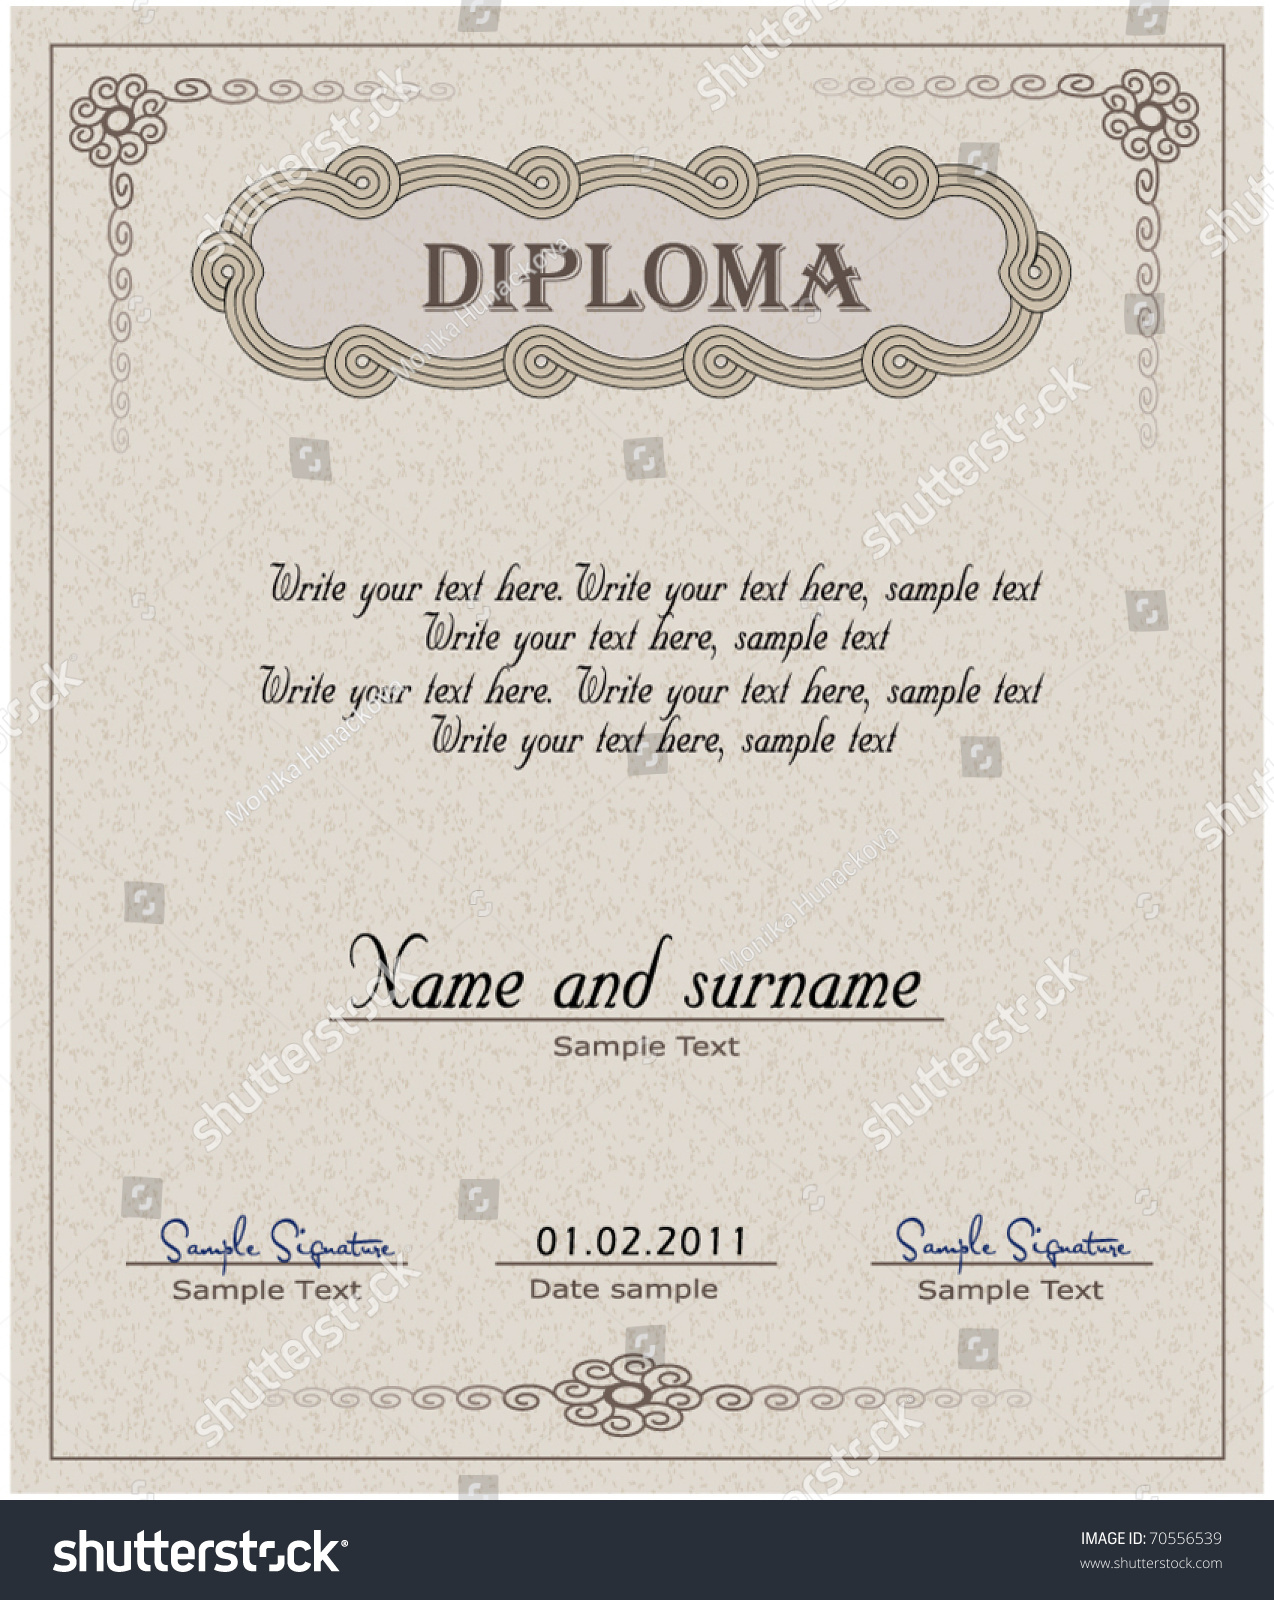 Diploma Paper Vector Certificate Template Stock Vector Royalty Free